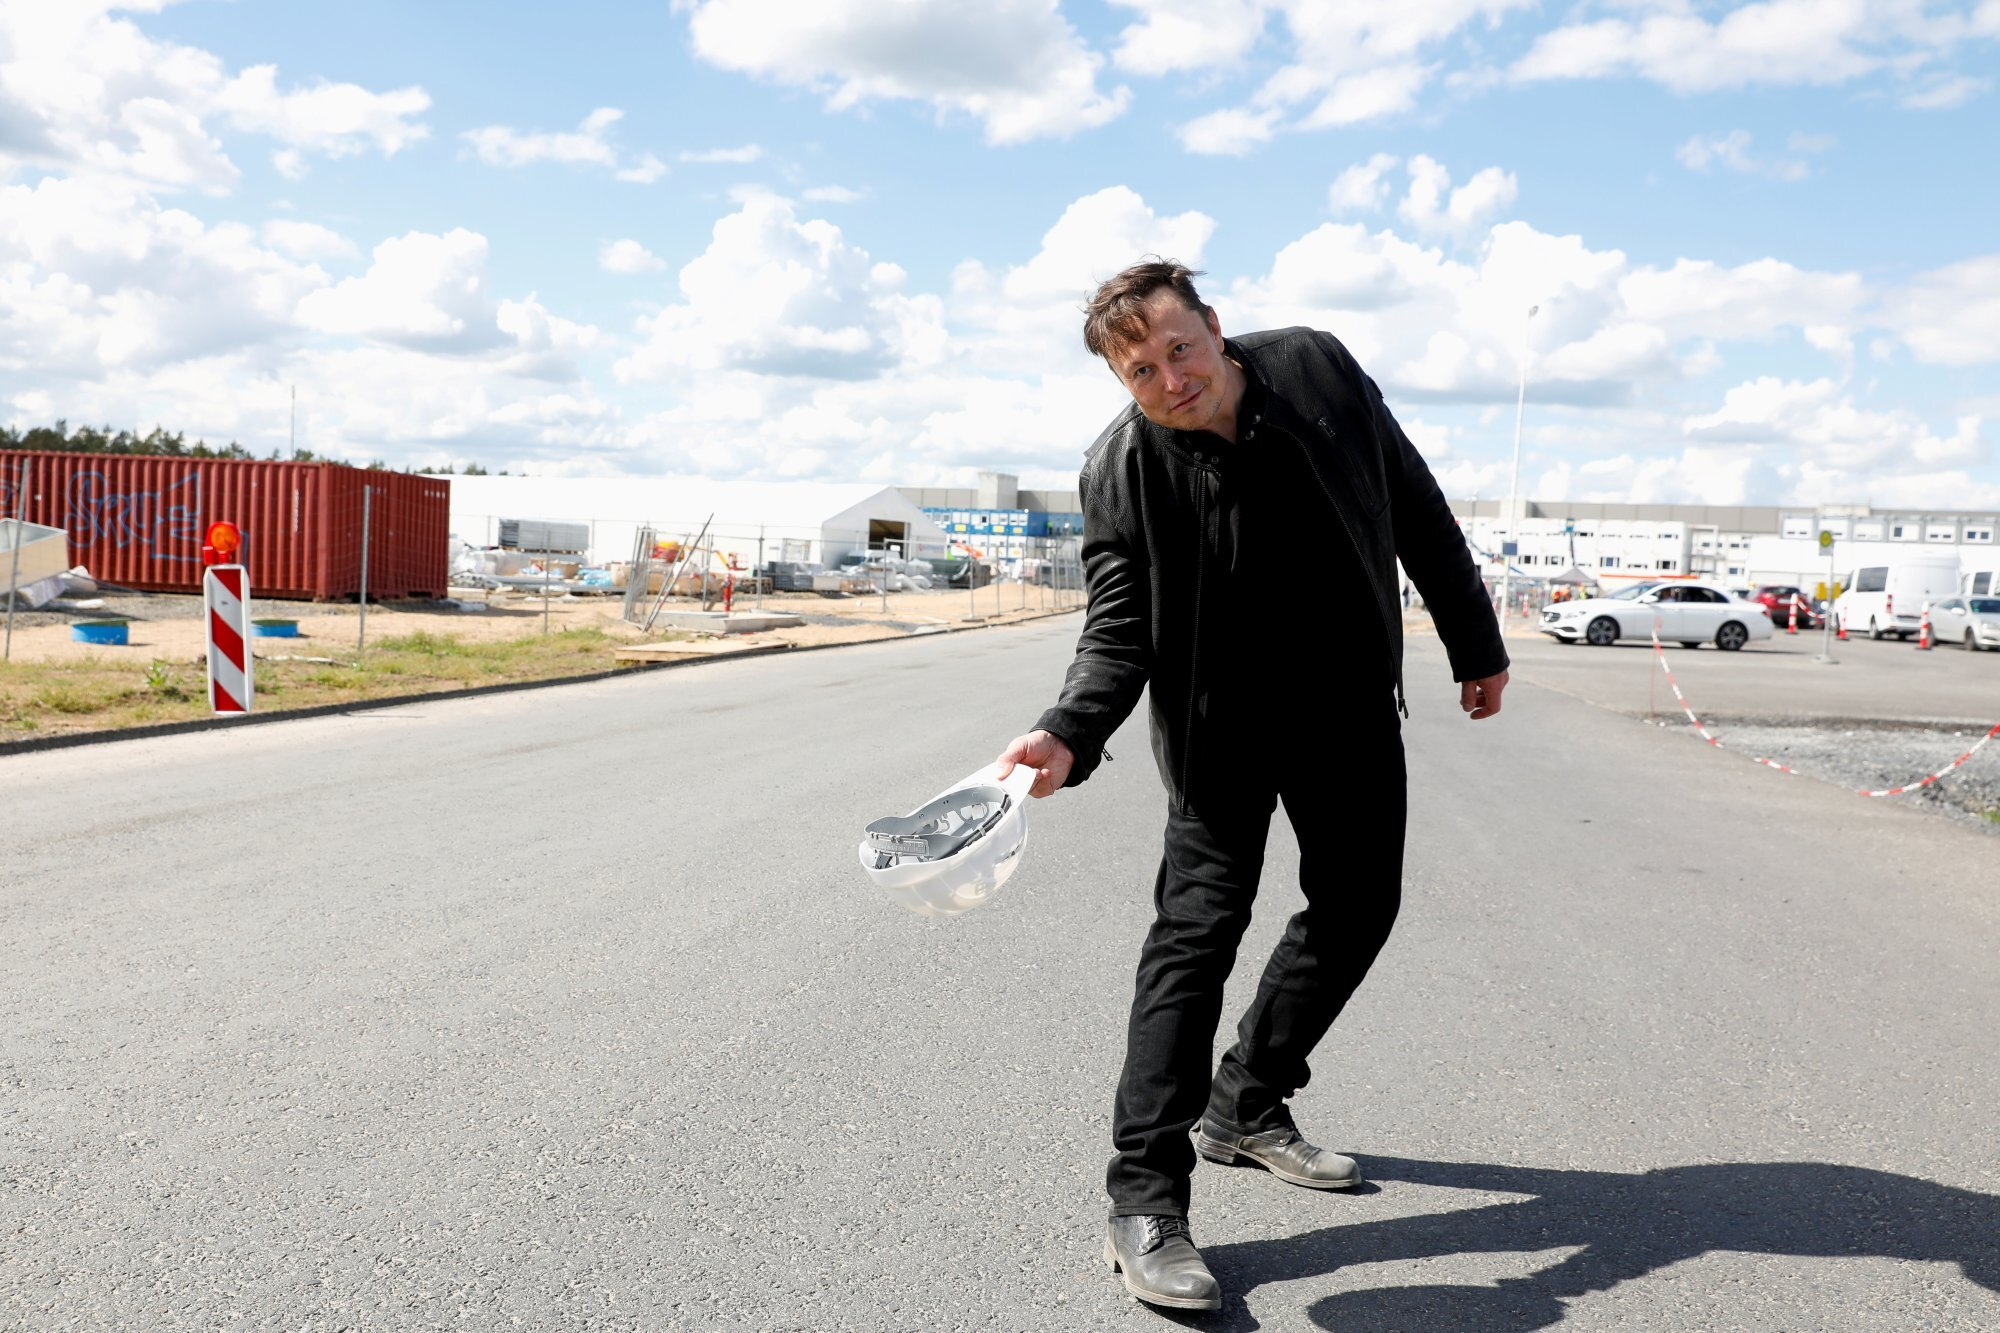 Tesla CEO Elon Musk visits the construction site of Tesla's gigafactory in Gruenheide, near Berlin, Germany, on May 17. Musk became the world's richest person following the surge in Tesla's share price. Photo: Reuters